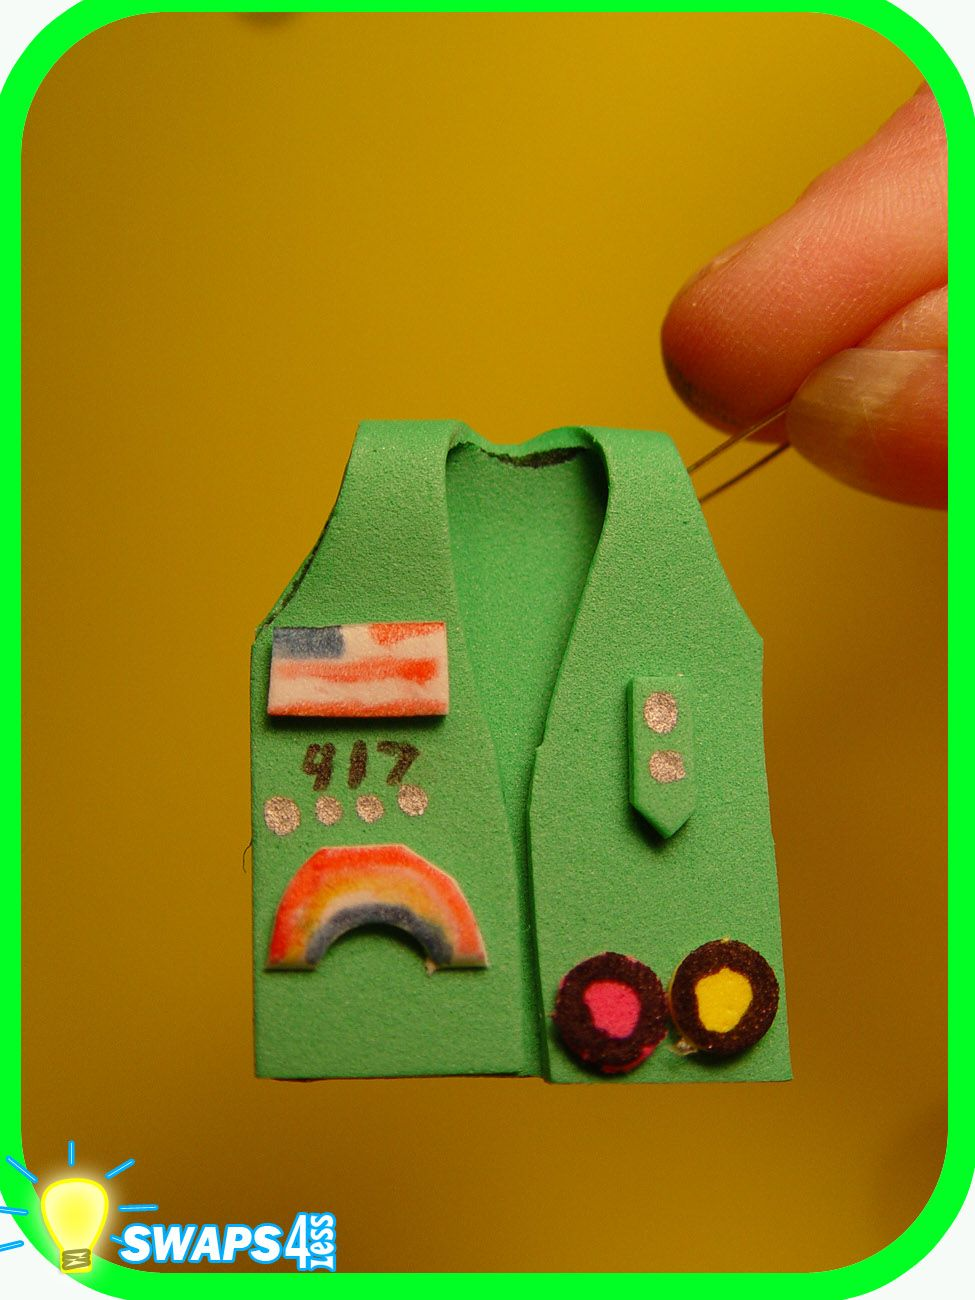 Junior vest 3 d scout swaps craft kit swaps4less girls for Girl scout daisy craft ideas